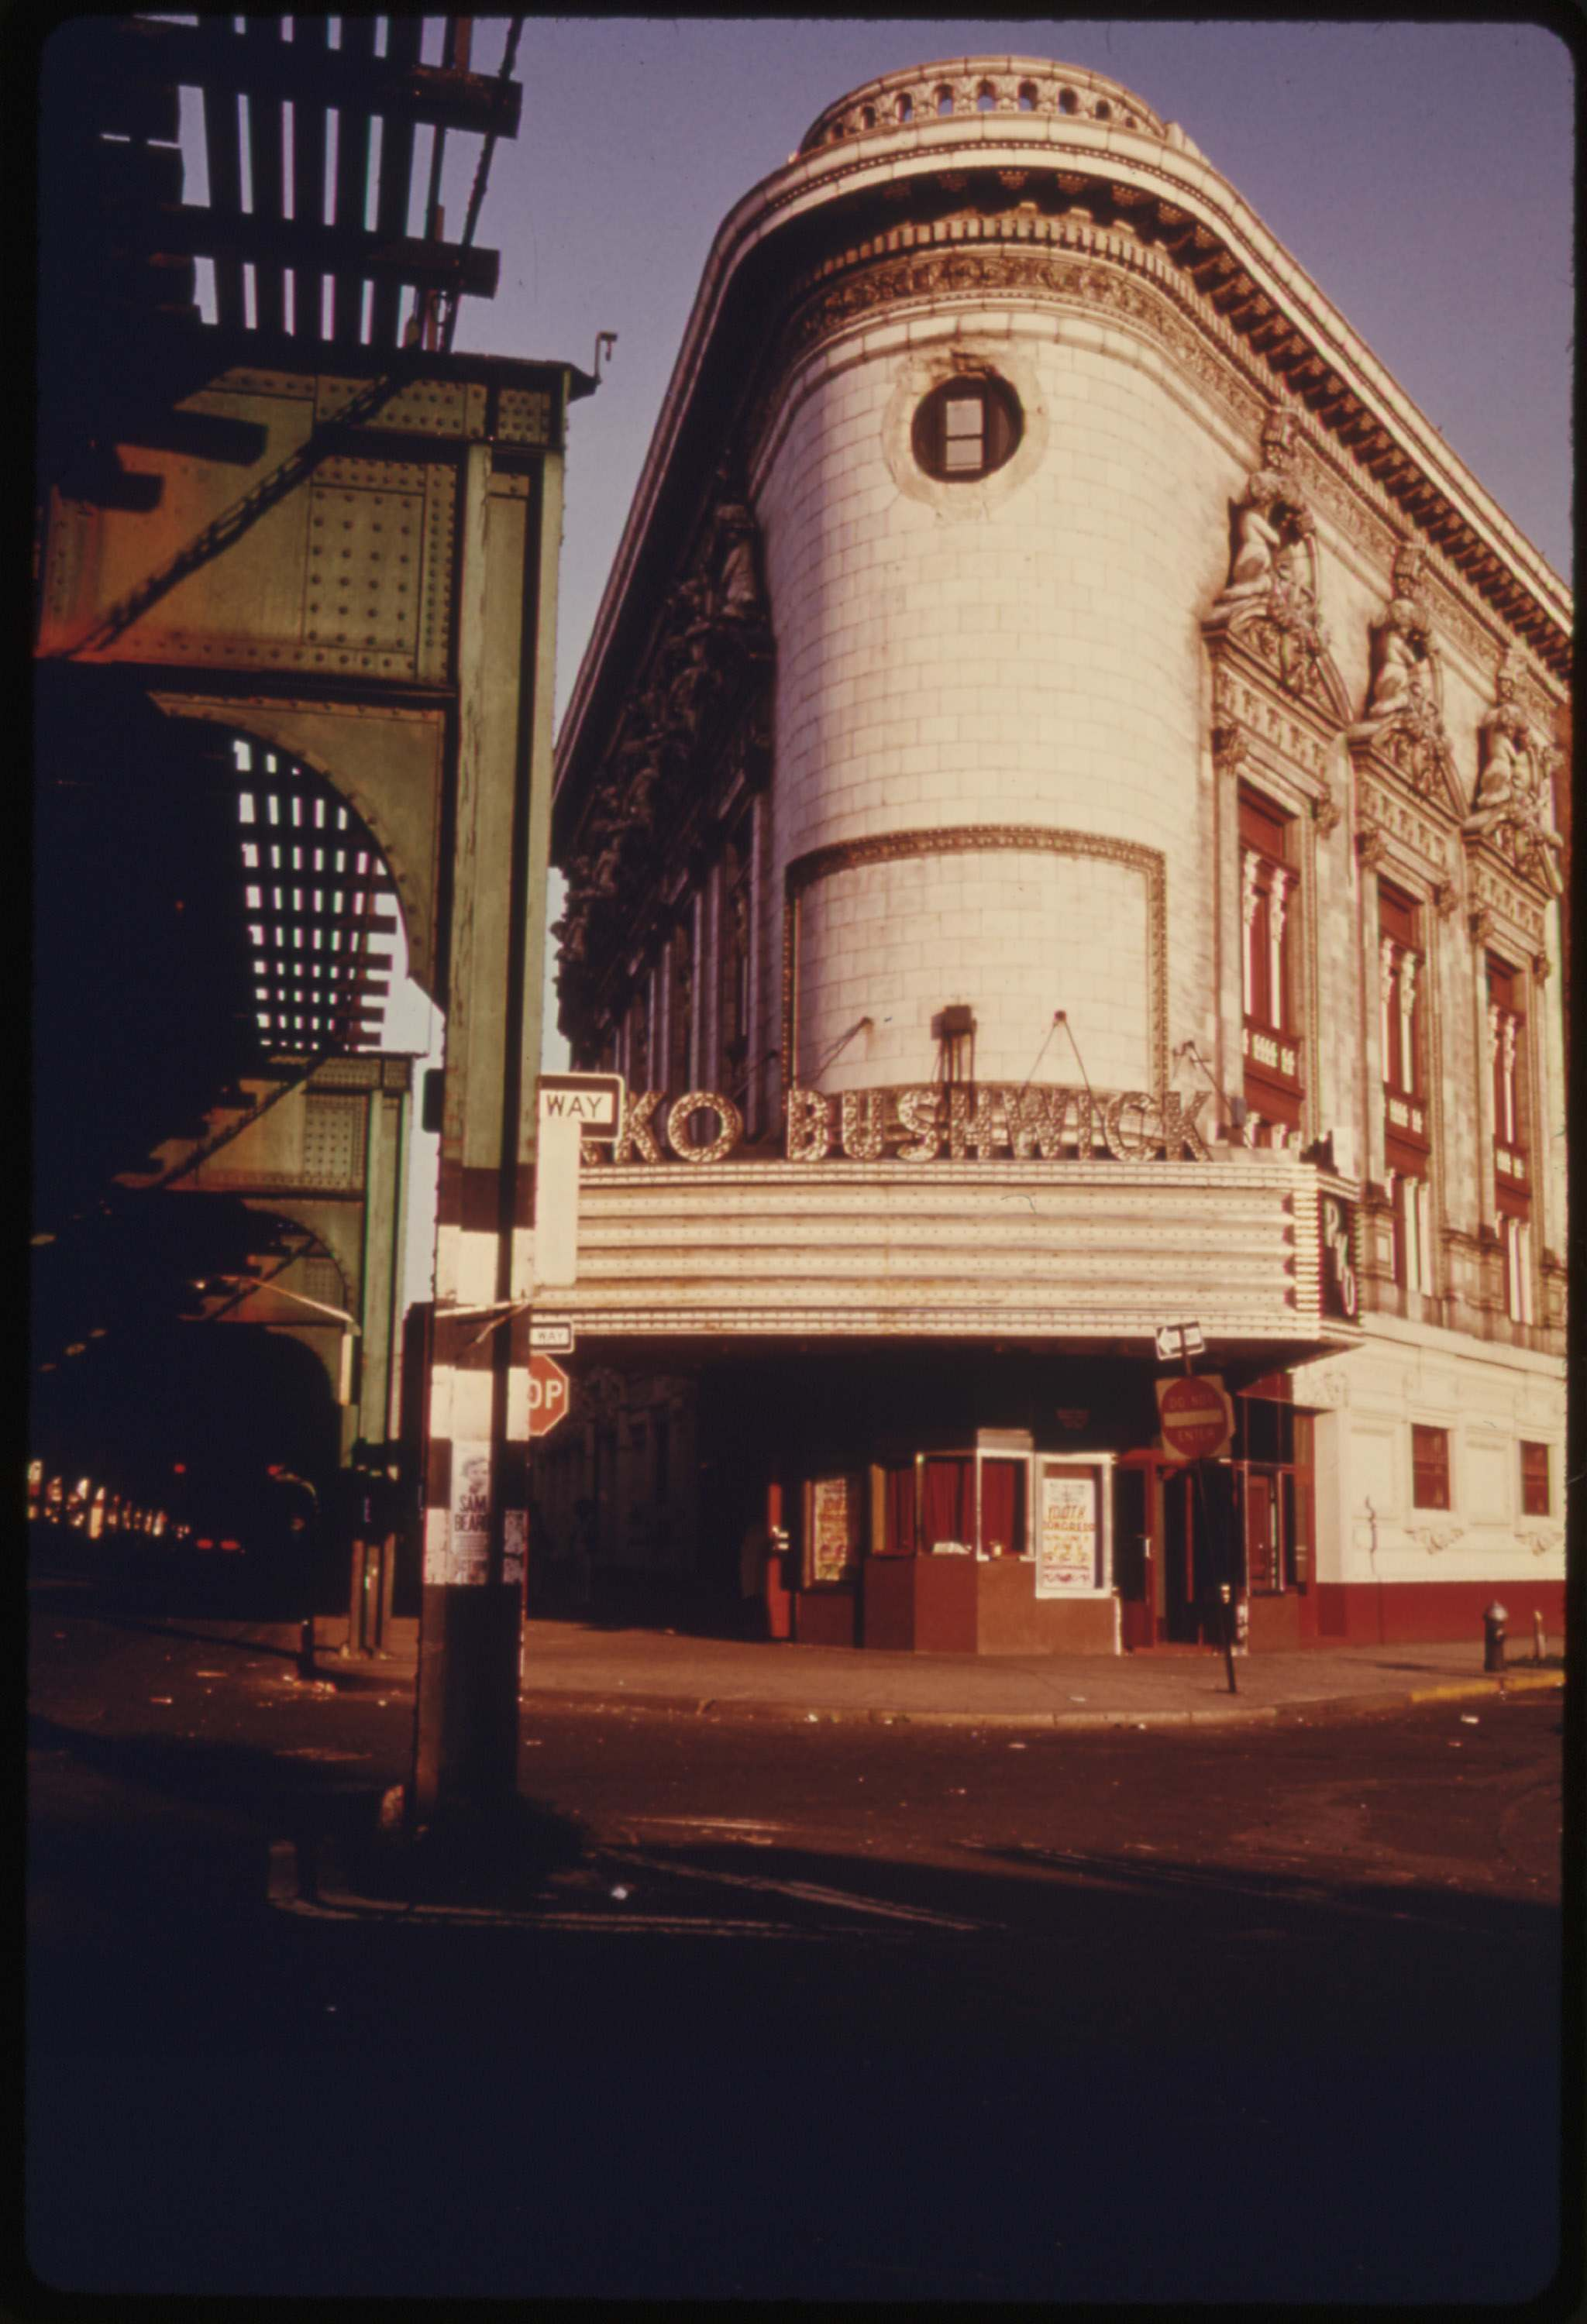 RKO Bushwick Theatre in Brooklyn, July 1974.